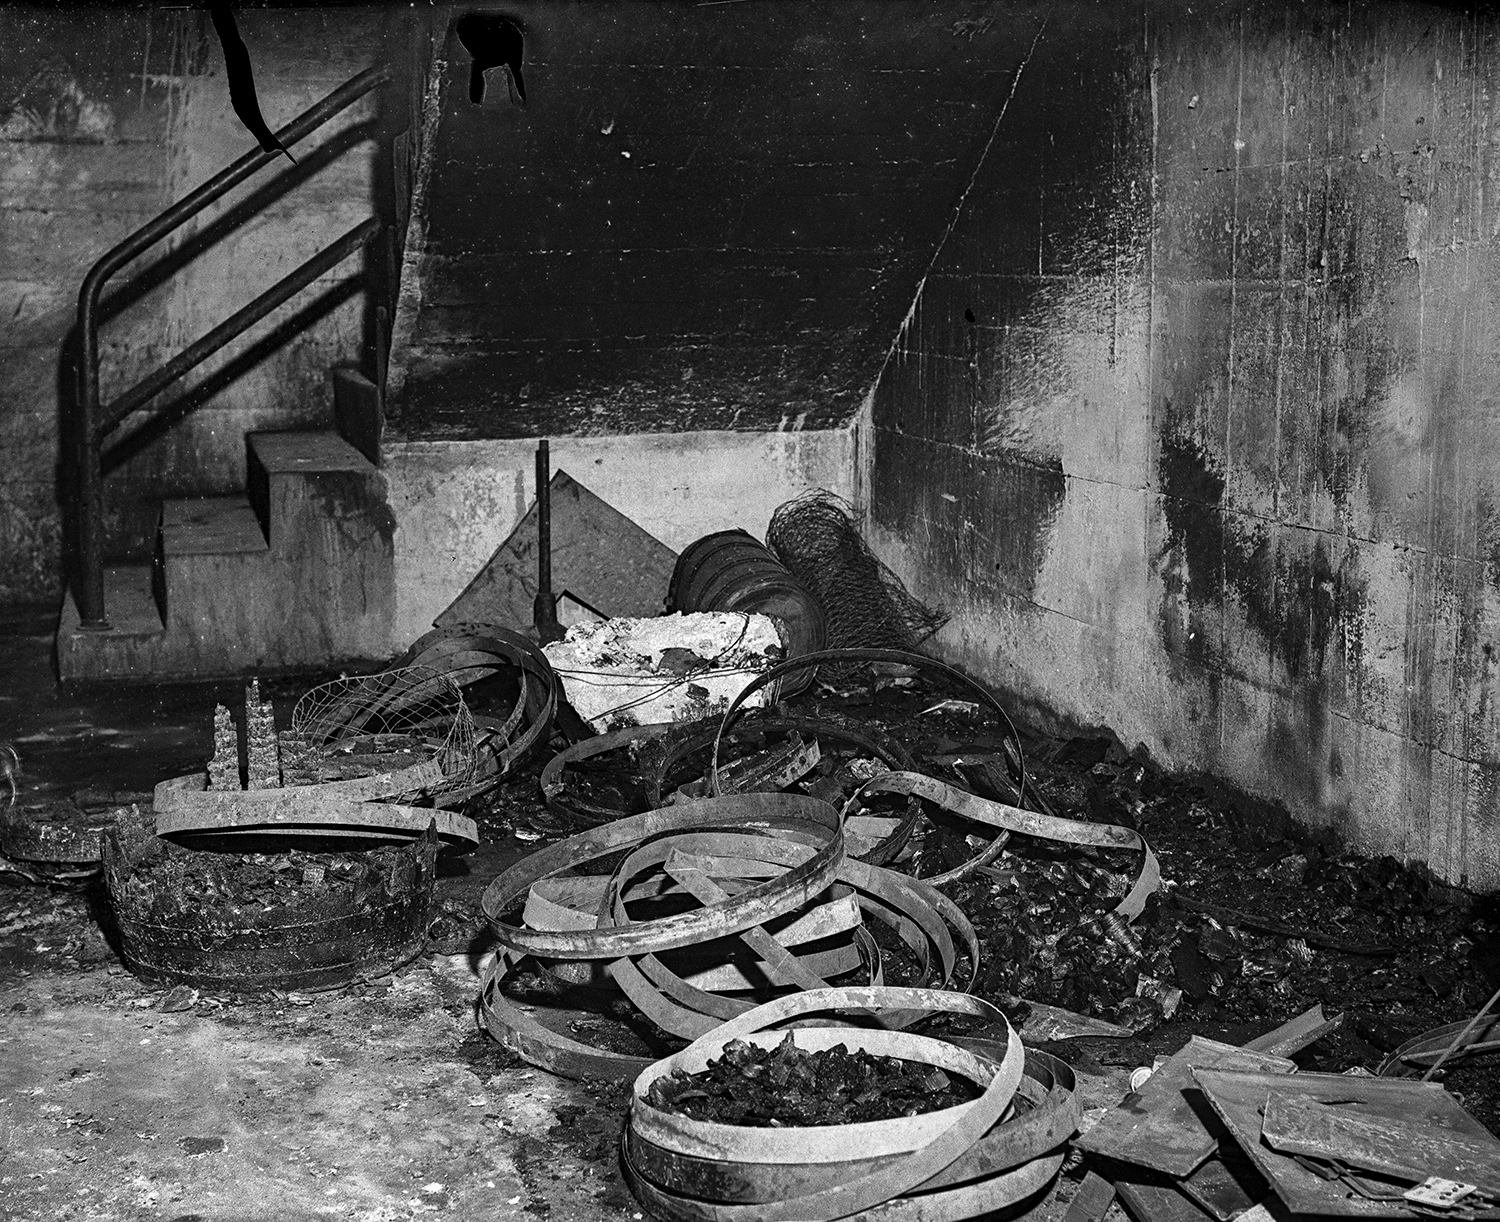 Debris is piled in a stairwell that led to the boiler room at Springfield High School where an explosion and fire killed three people, including two Springfield firefighters March 20, 1932. File/The State Journal-Register